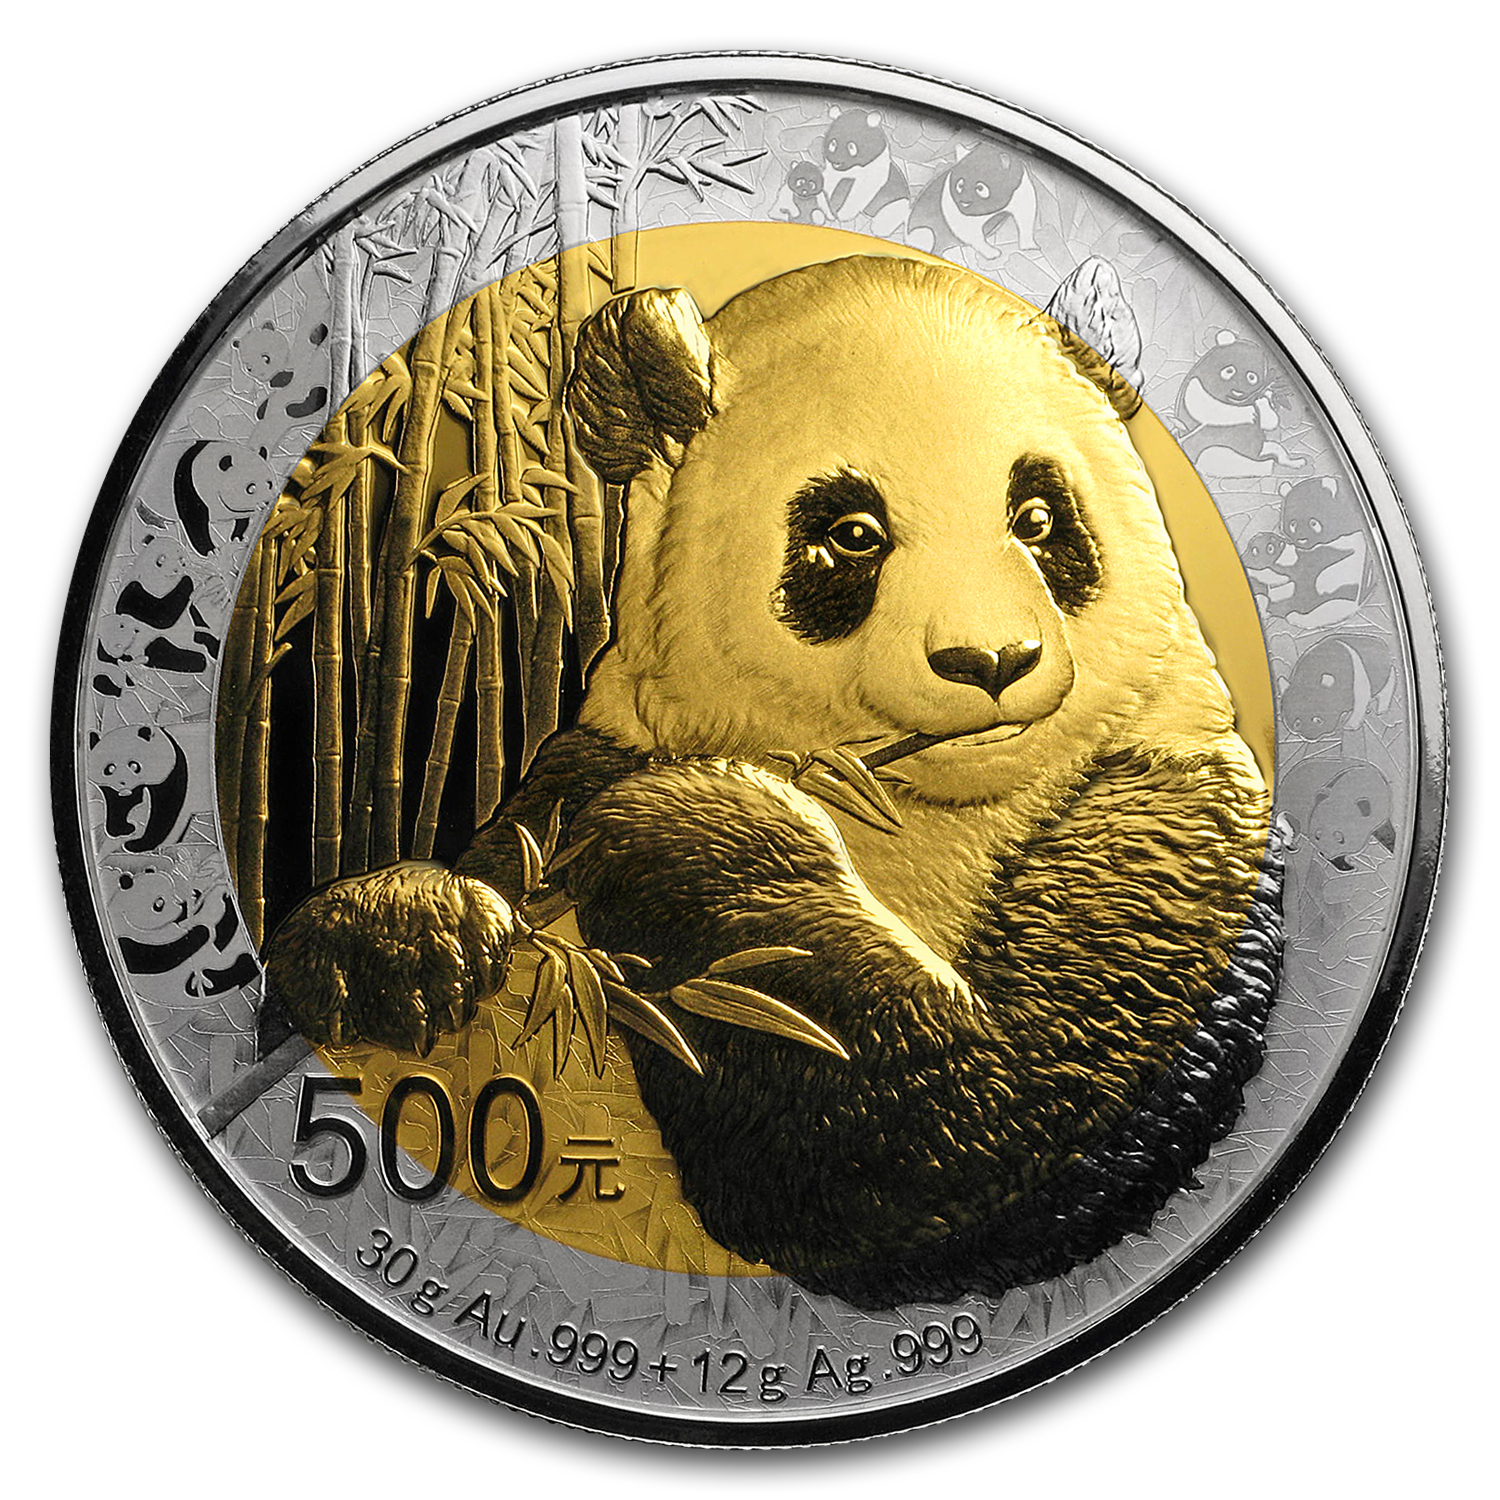 2017 China 30 gram Bi-Metal 35th Anniversary of Gold Panda